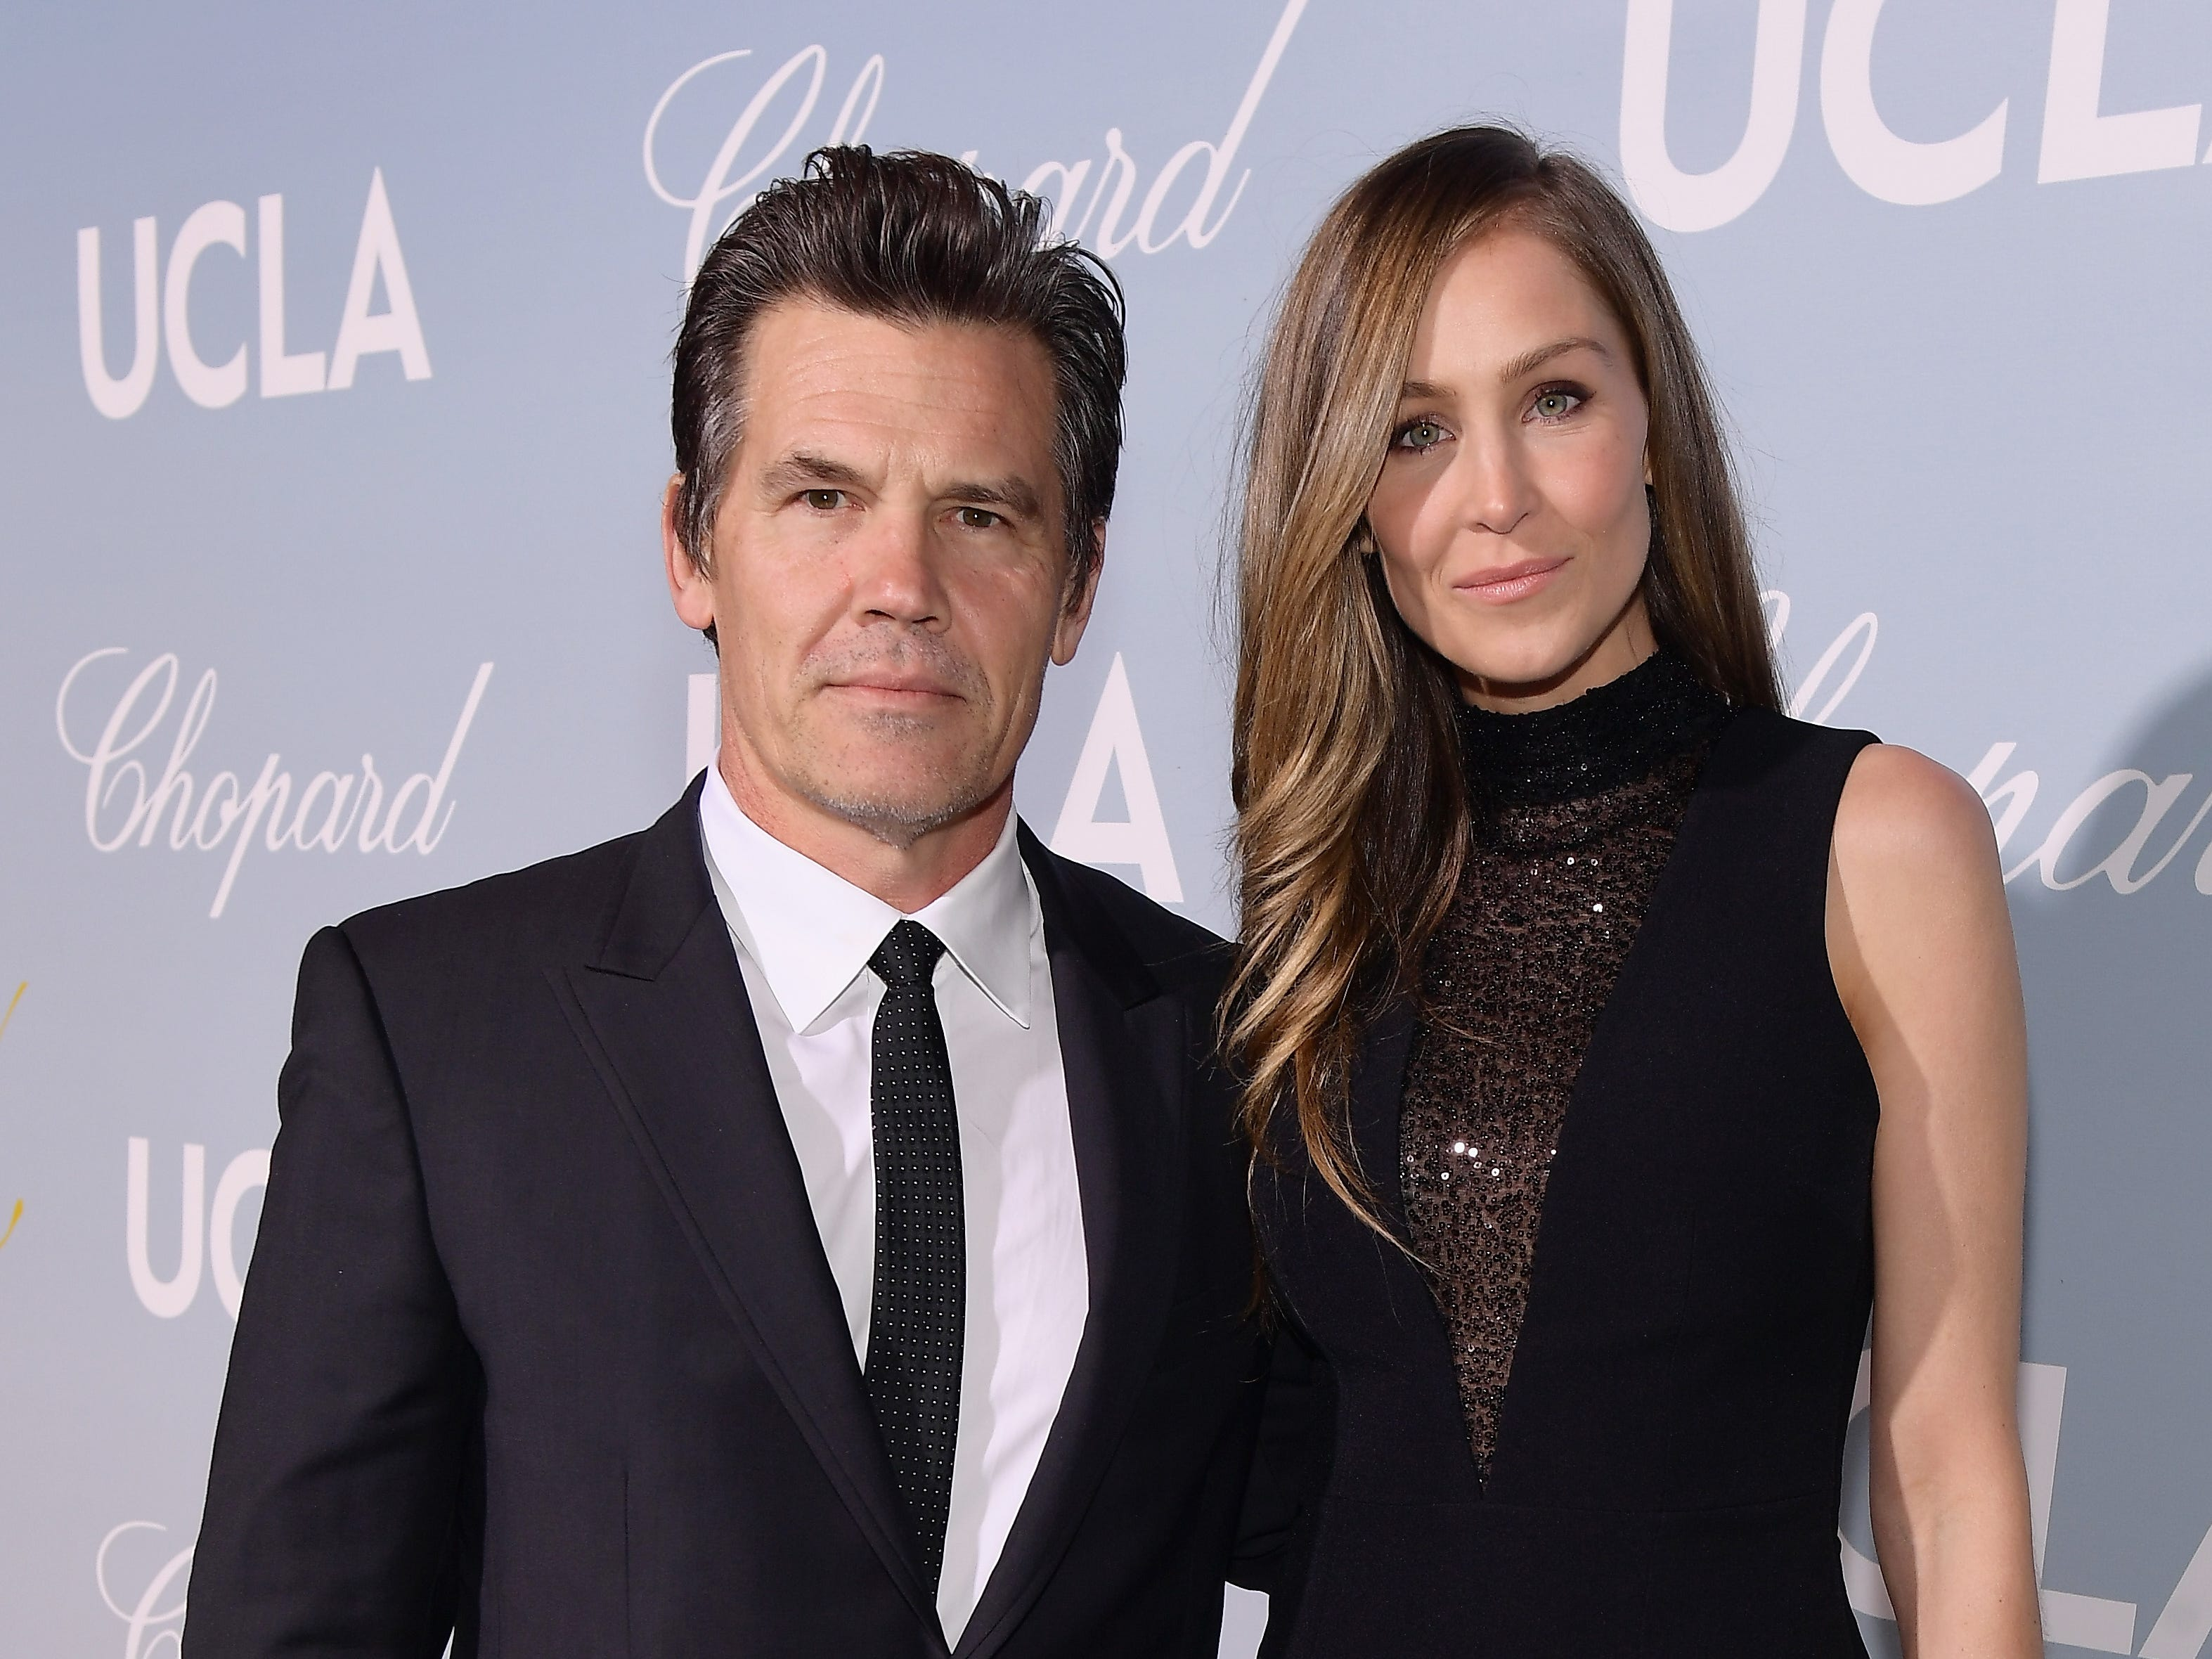 BEVERLY HILLS, CA - FEBRUARY 21:  Josh Brolin and Kathryn Boyd attend the UCLA IoES honors Barbra Streisand and Gisele Bundchen at the 2019 Hollywood for Science Gala on February 21, 2019 in Beverly Hills, California.  (Photo by Matt Winkelmeyer/Getty Images for UCLA Institute of the Environment & Sustainability) ORG XMIT: 775301825 ORIG FILE ID: 1126664758